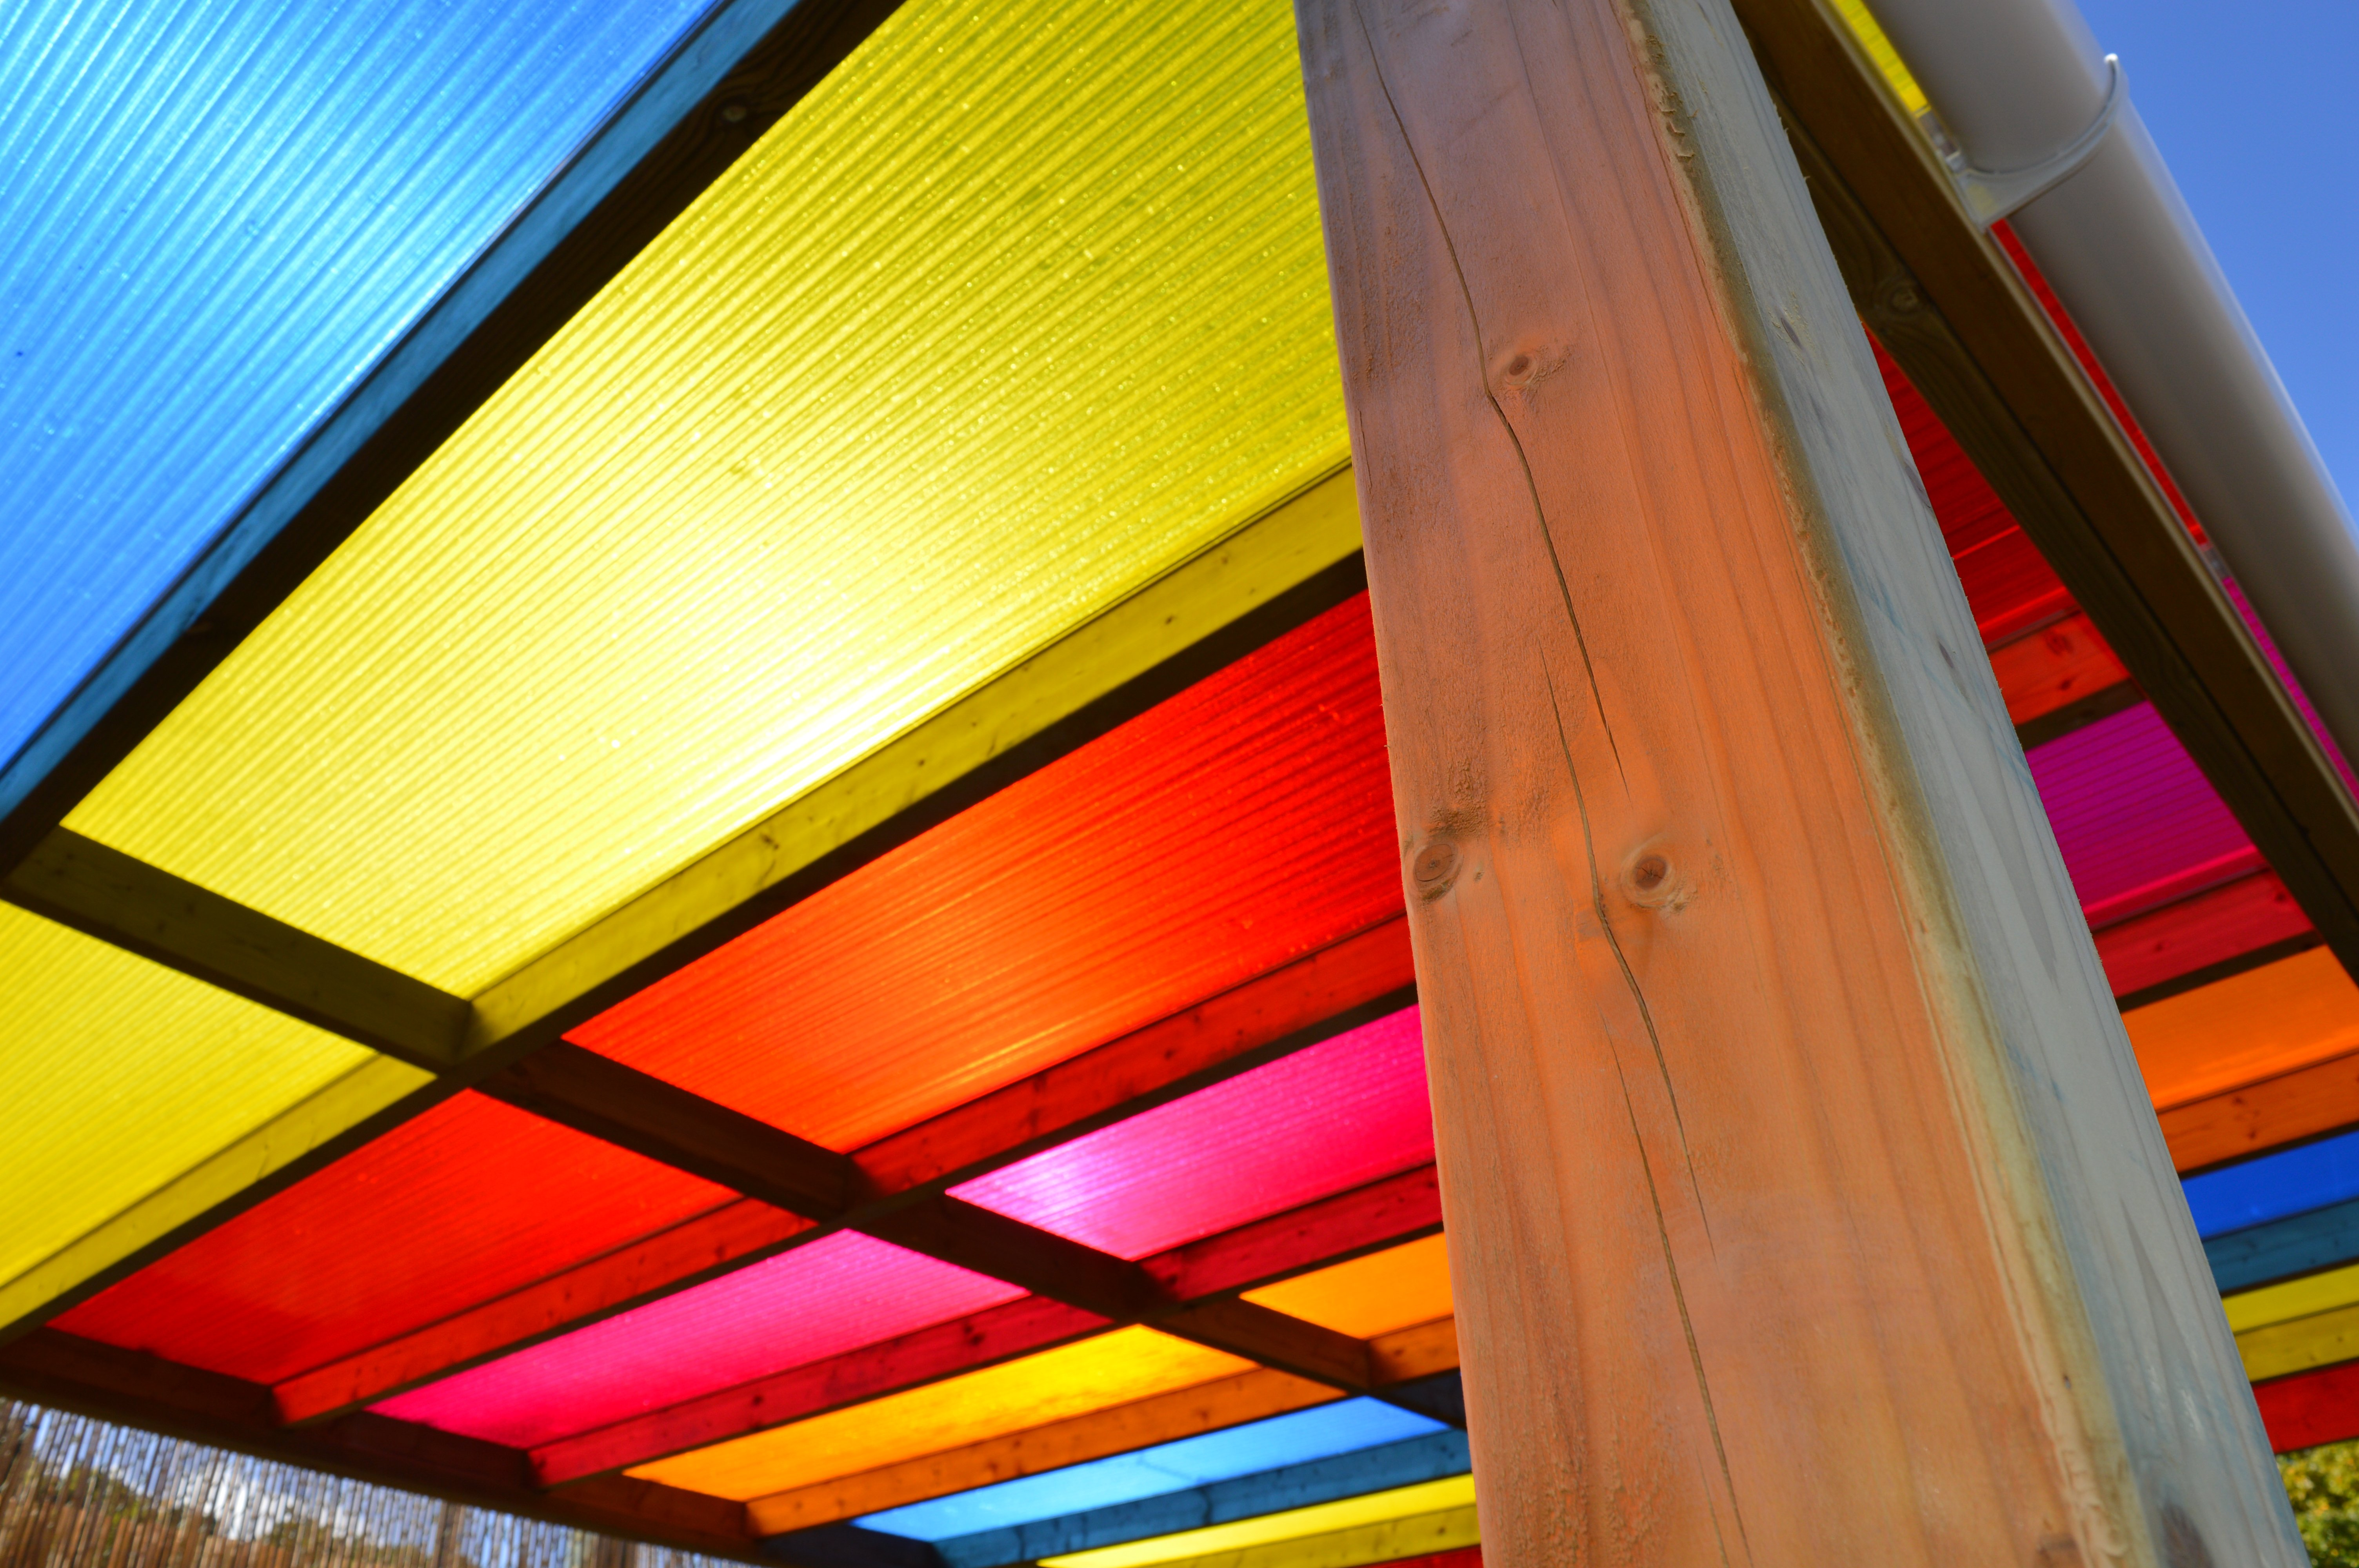 Canopy, Canopies, Shelter, Playground